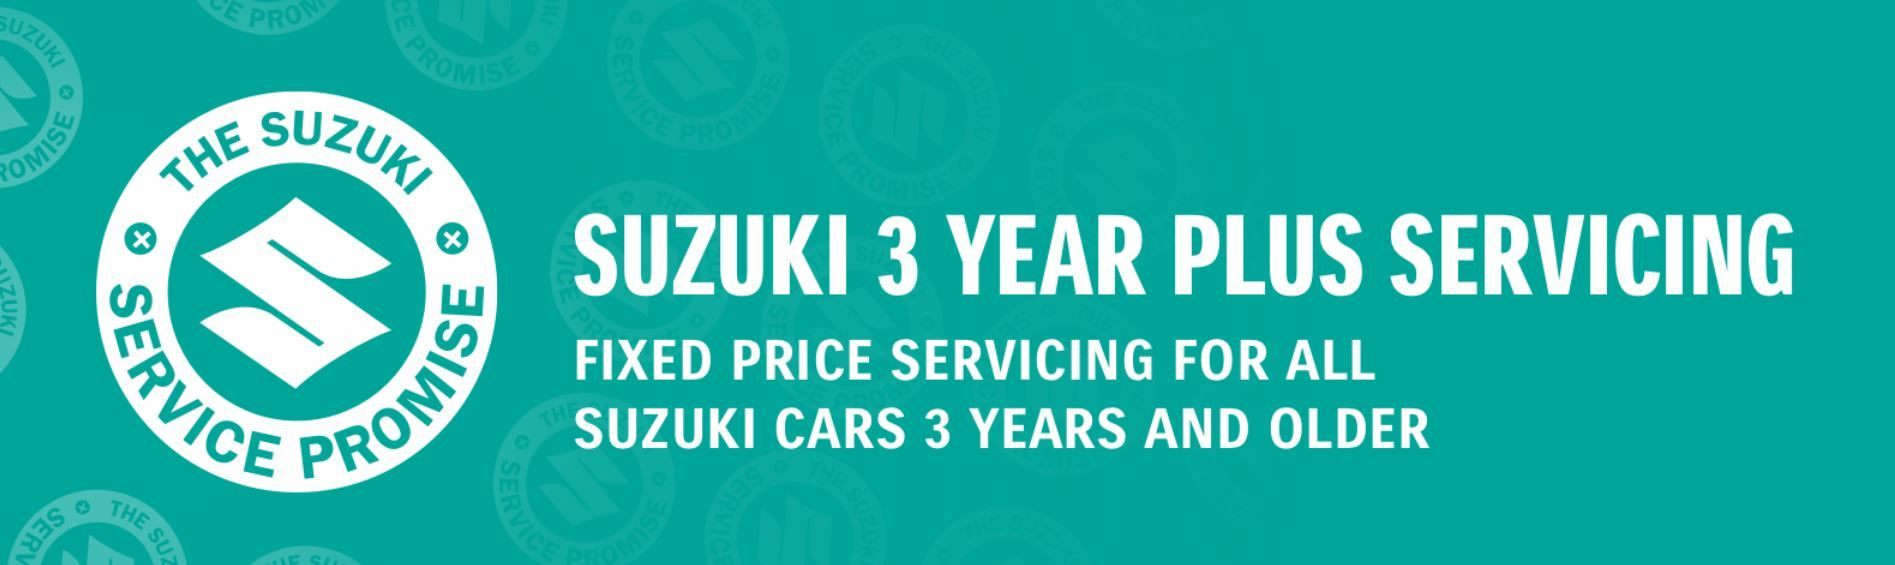 Suzuki 3 Year Plus Servicing